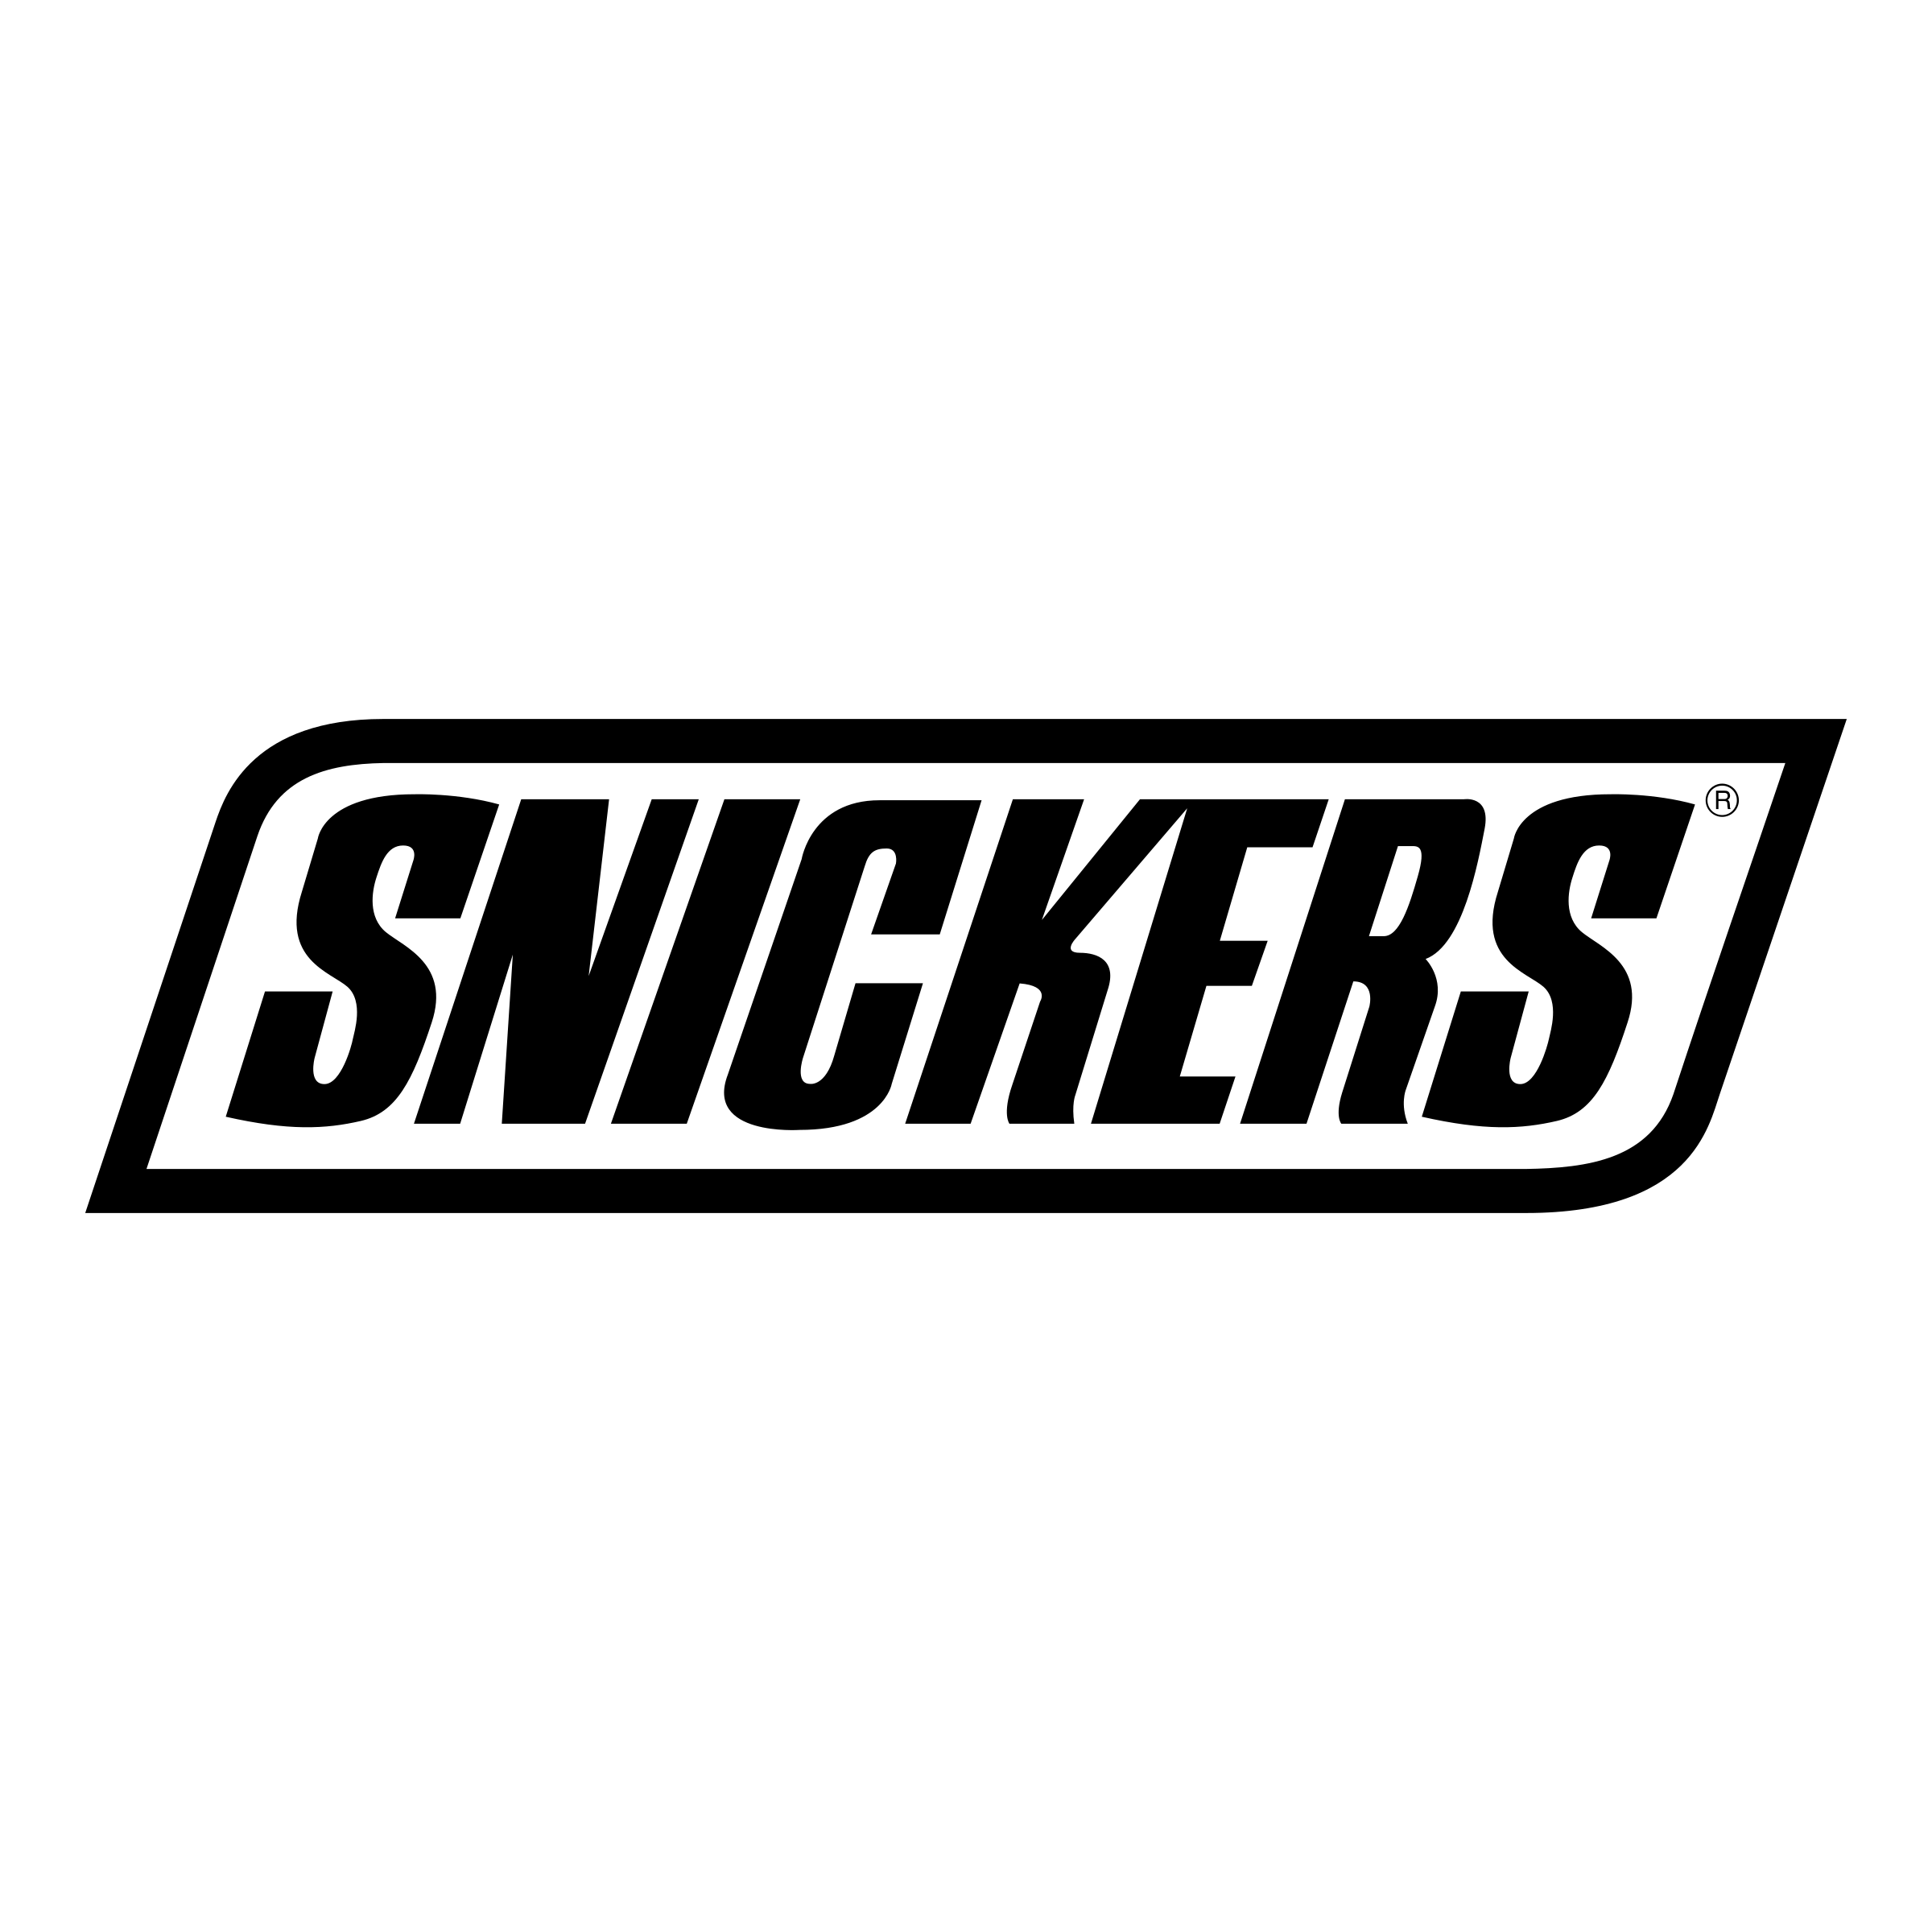 Snickers Logo PNG Transparent & SVG Vector.